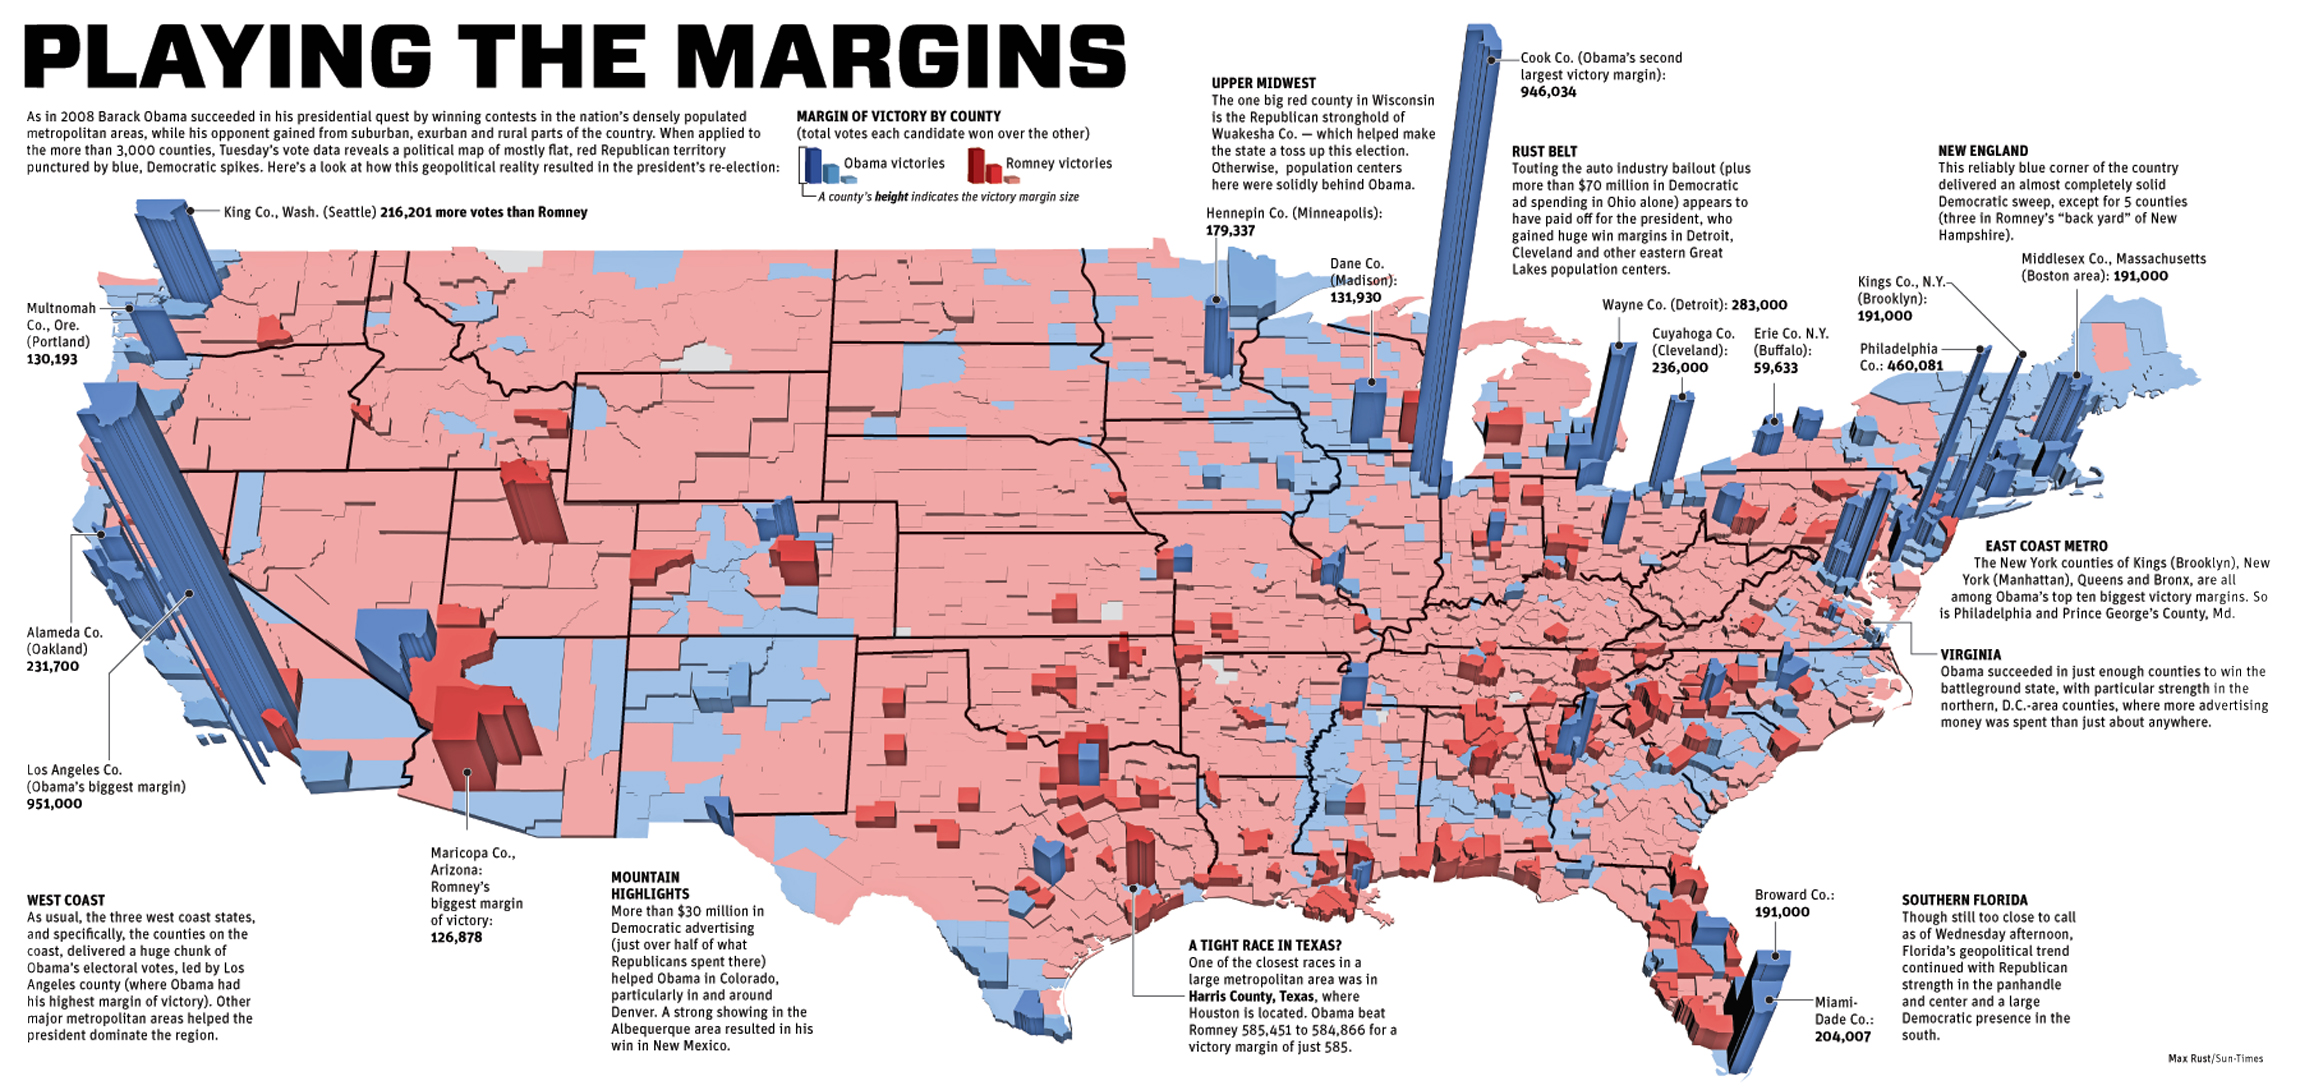 TheDC Predicts The Winner Of The Presidential The Daily Caller - 2012 presidential election us map